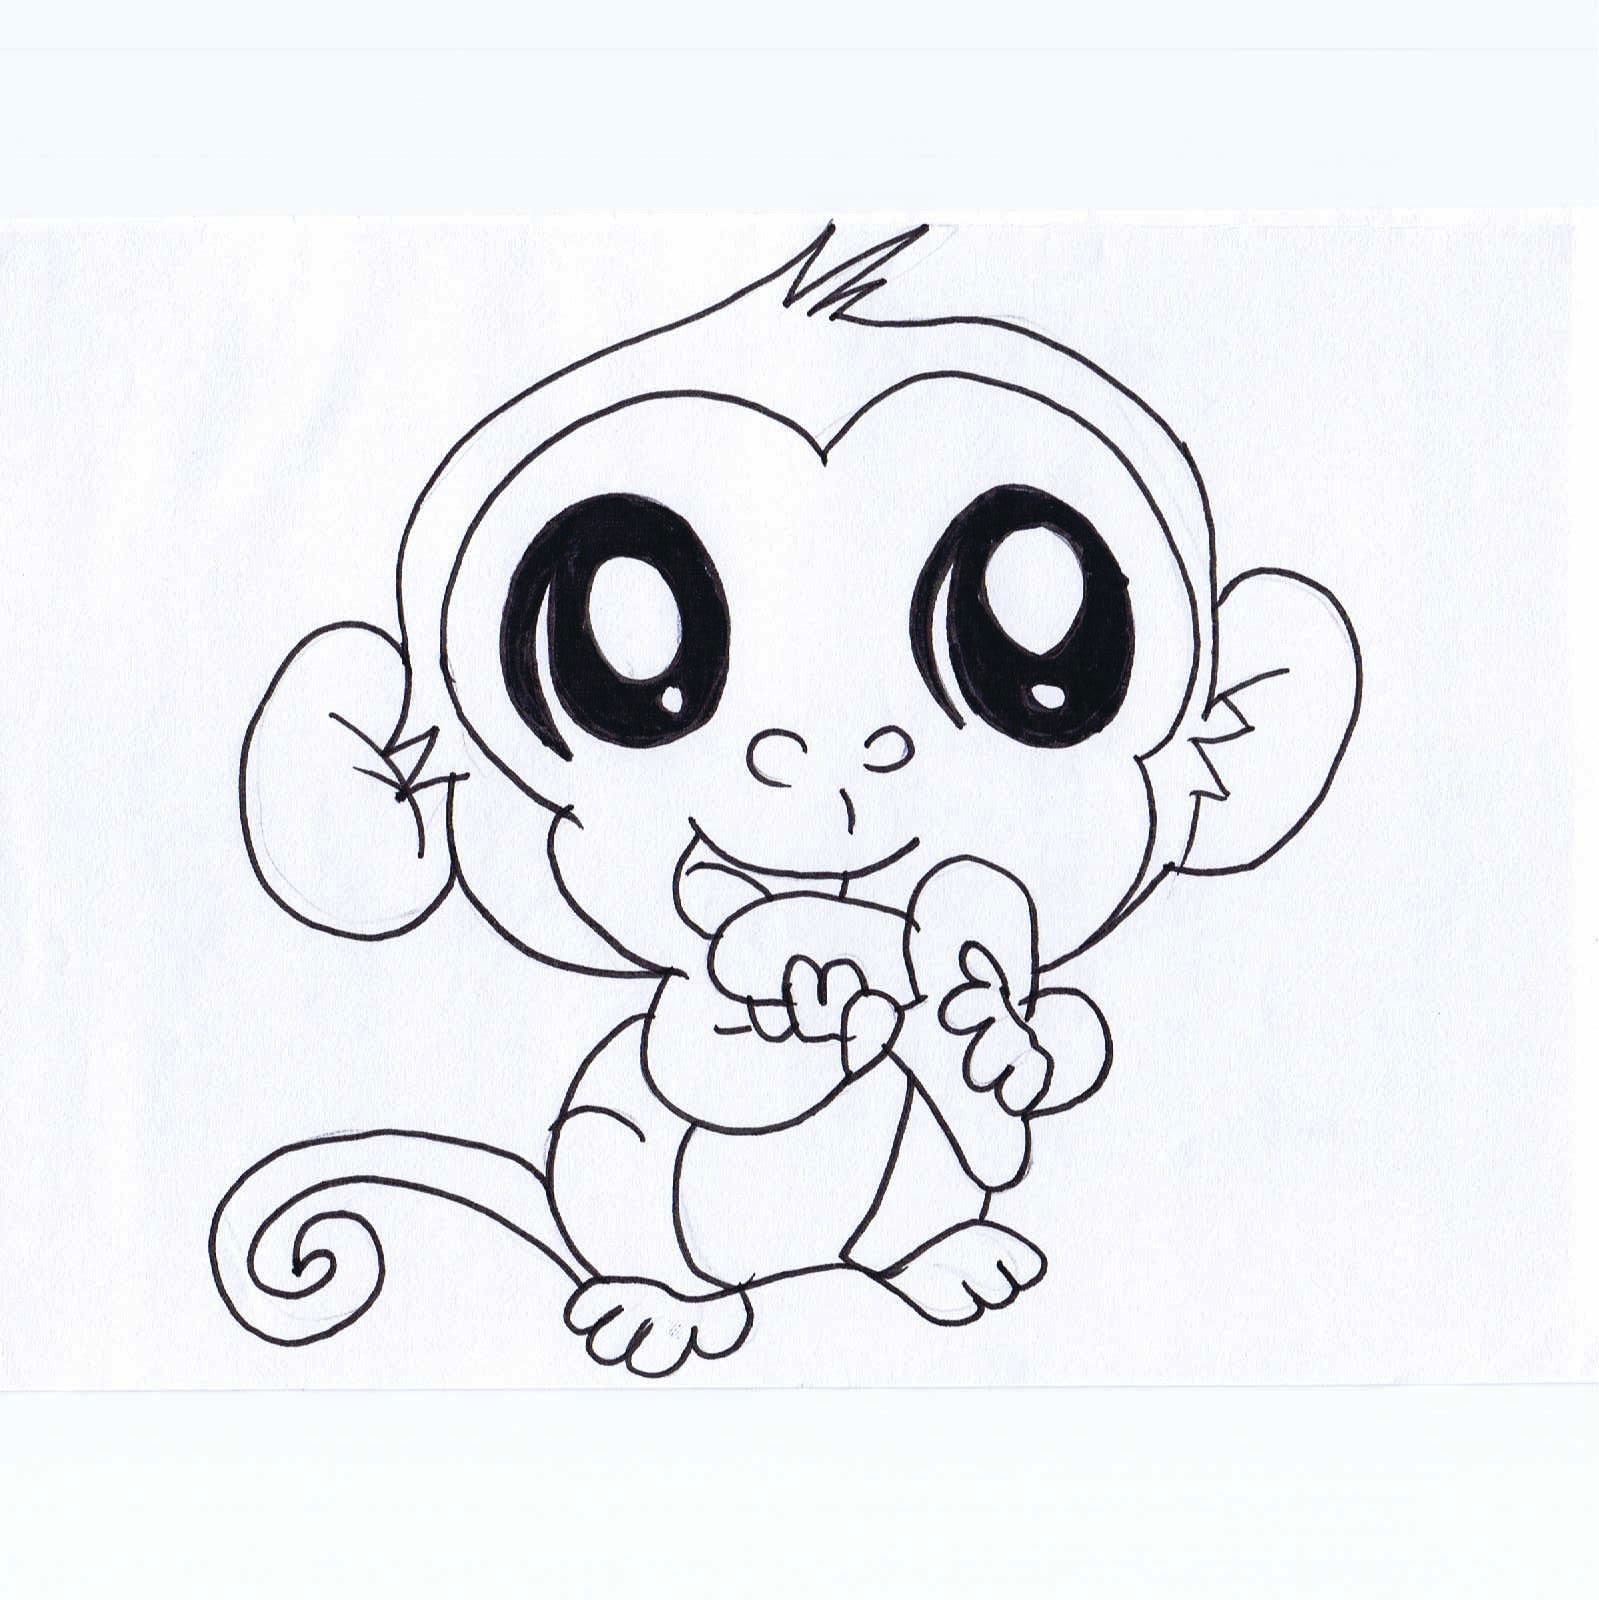 Cute Baby Monkey Coloring Pages | Top Free Coloring Pages ...